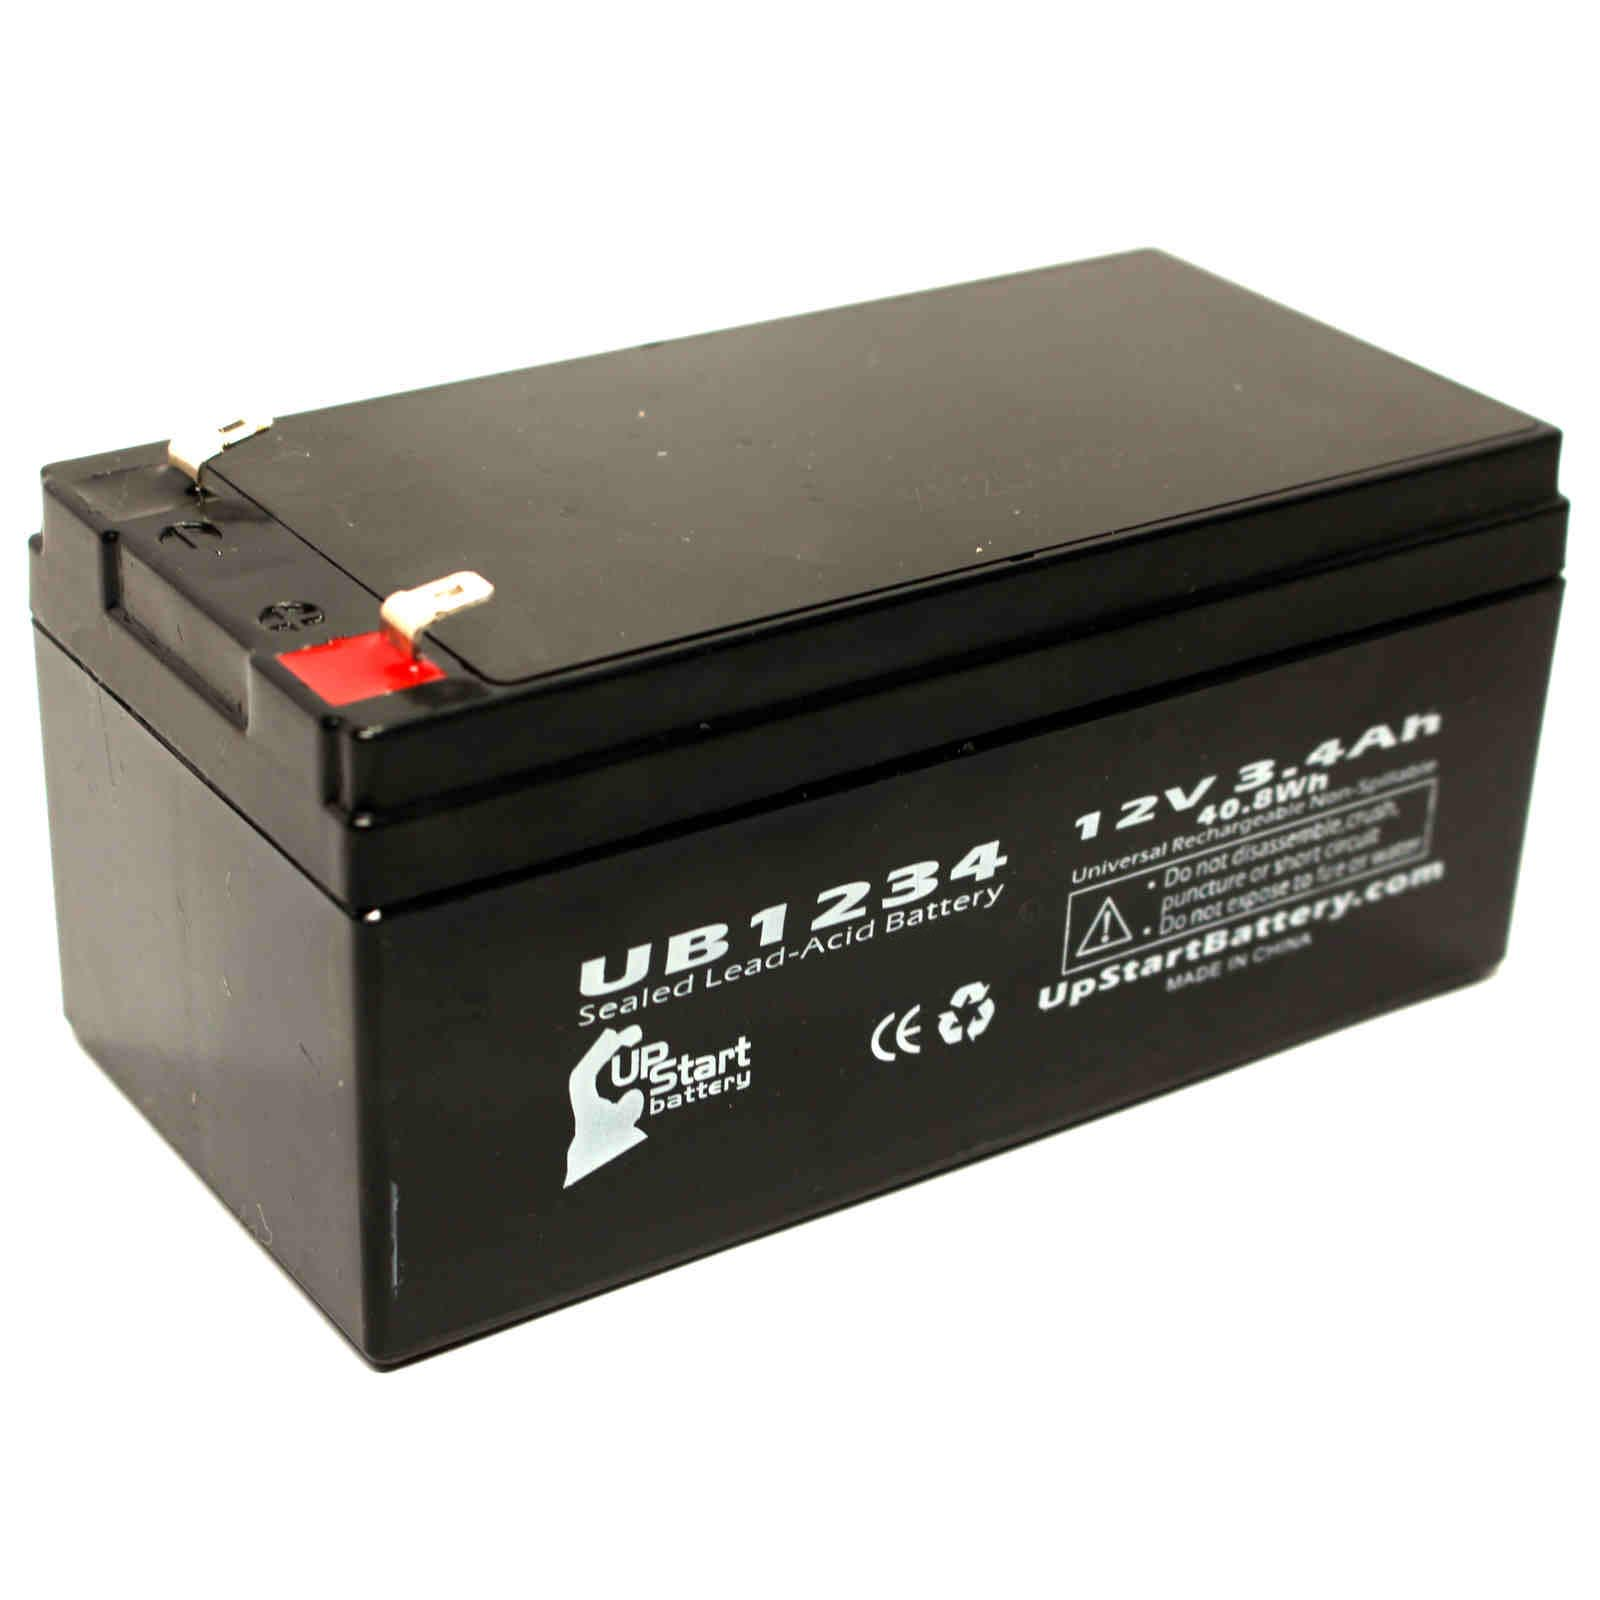 APC 35 Battery Replacement - UB1234 Universal Sealed Lead Acid Battery (12V, 3.4Ah, 3400mAh, F1 Terminal, AGM, SLA) - Includes TWO F1 to F2 Terminal Adapters - image 4 de 4